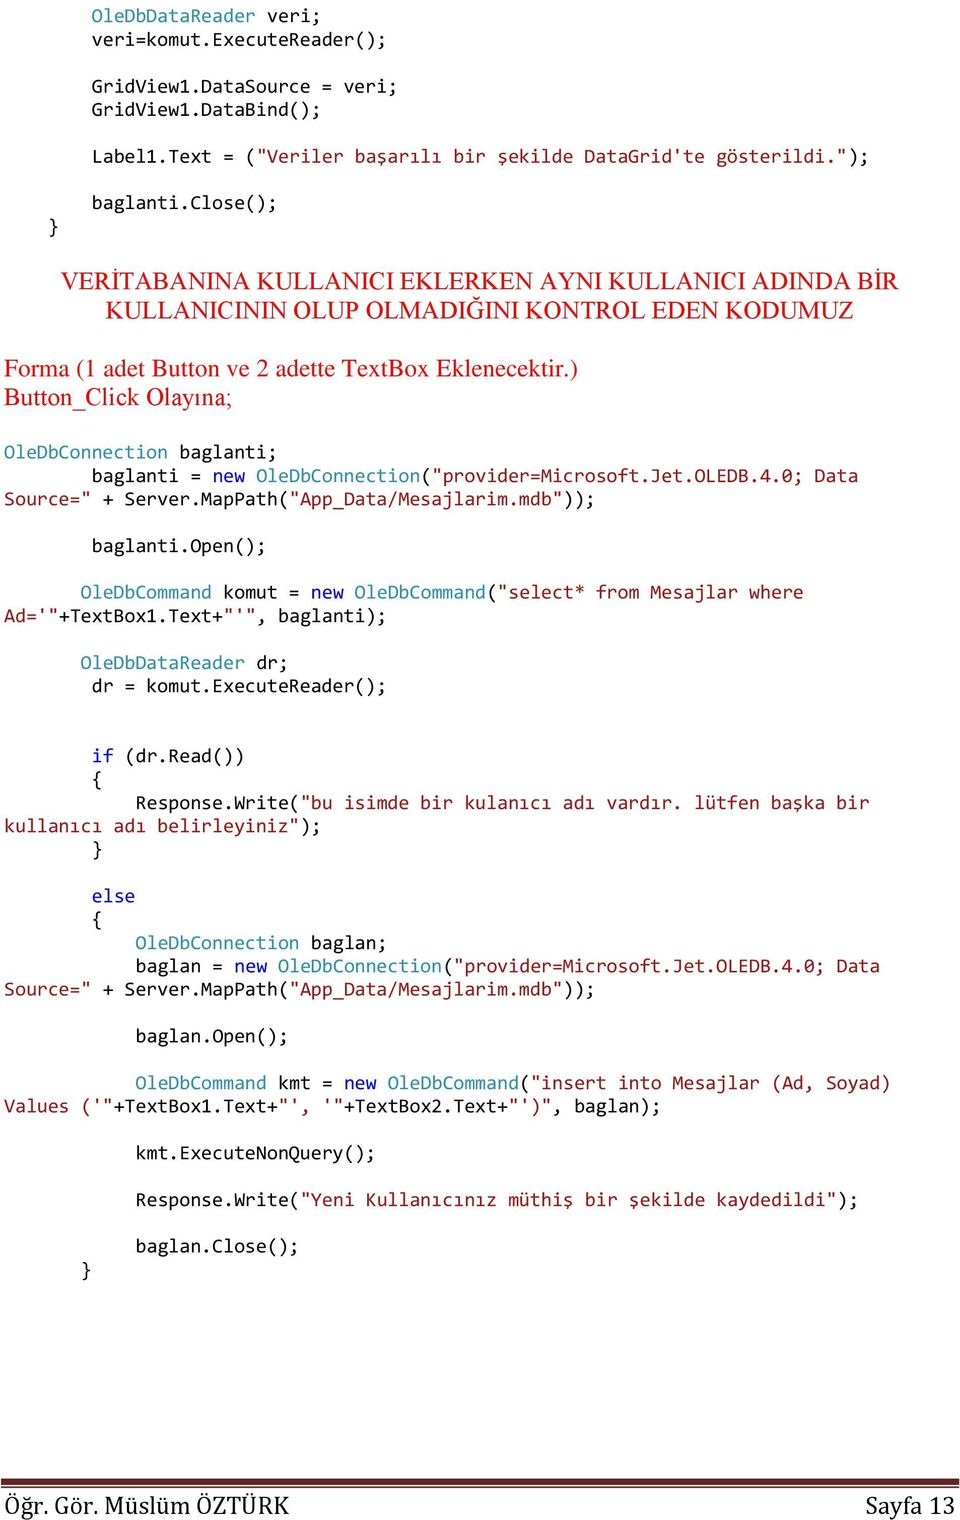 ") Button_Click Olayına; OleDbConnection baglanti; baglanti = new OleDbConnection(""provider=Microsoft.Jet.OLEDB.4.0; Data Source="" + Server.MapPath(""App_Data/Mesajlarim.mdb"")); baglanti."